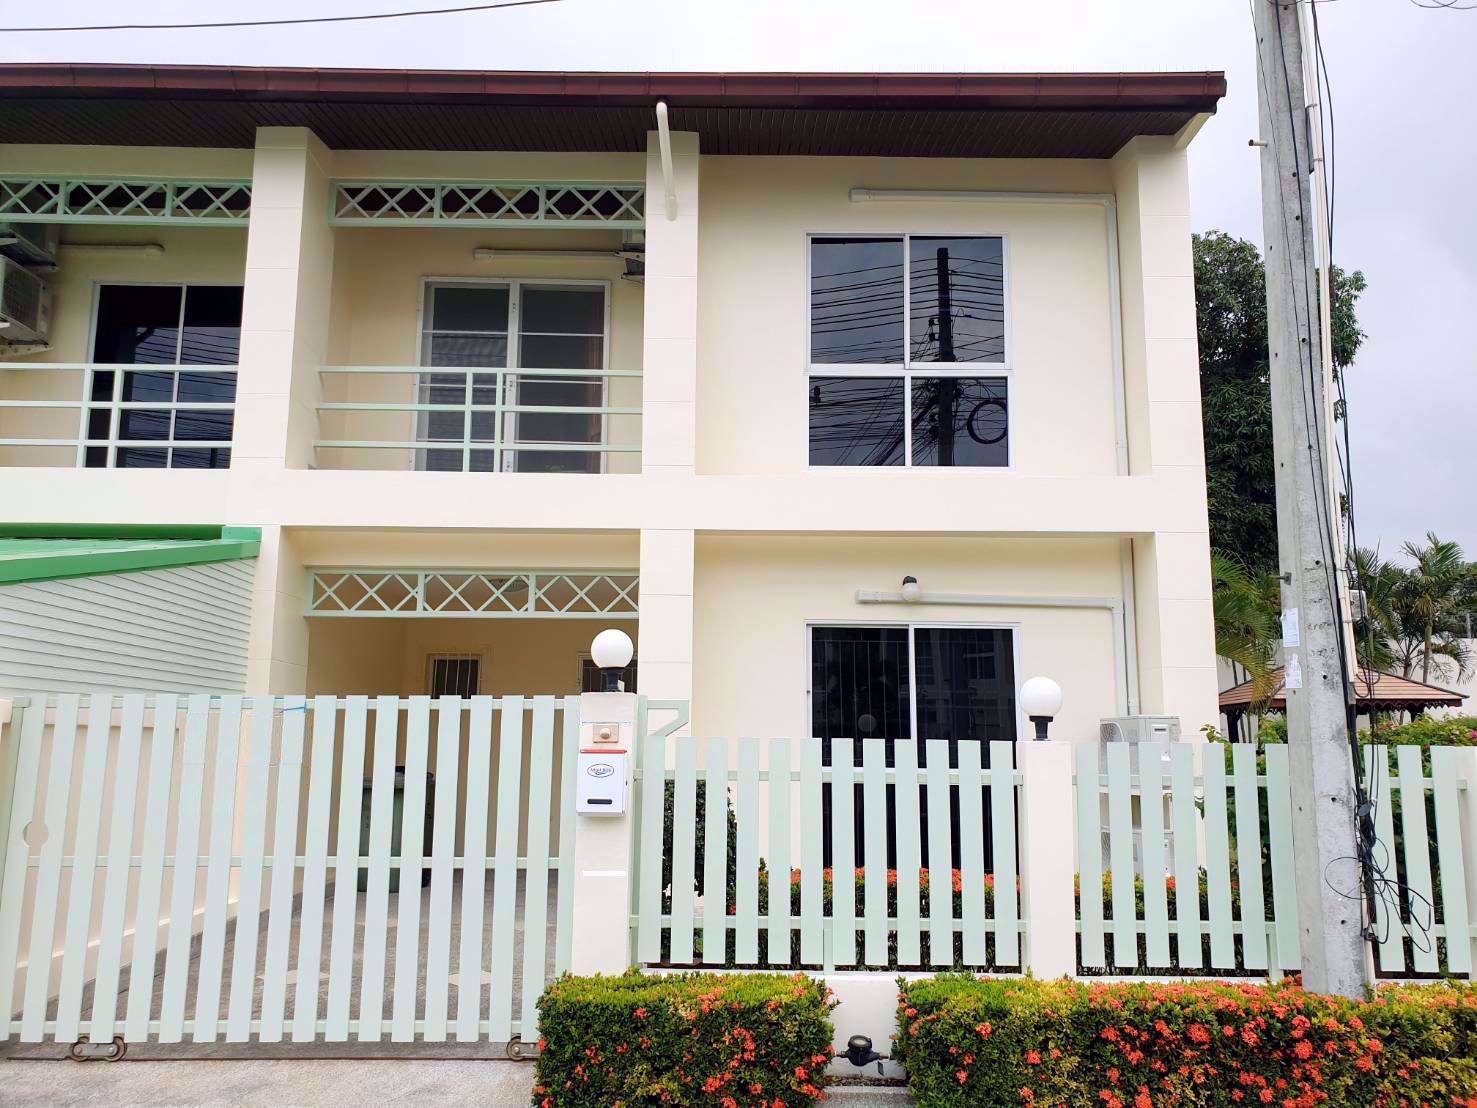 Picture of 3 Bedrooms bed in House in Green Field Villa 3 in East Pattaya H009112